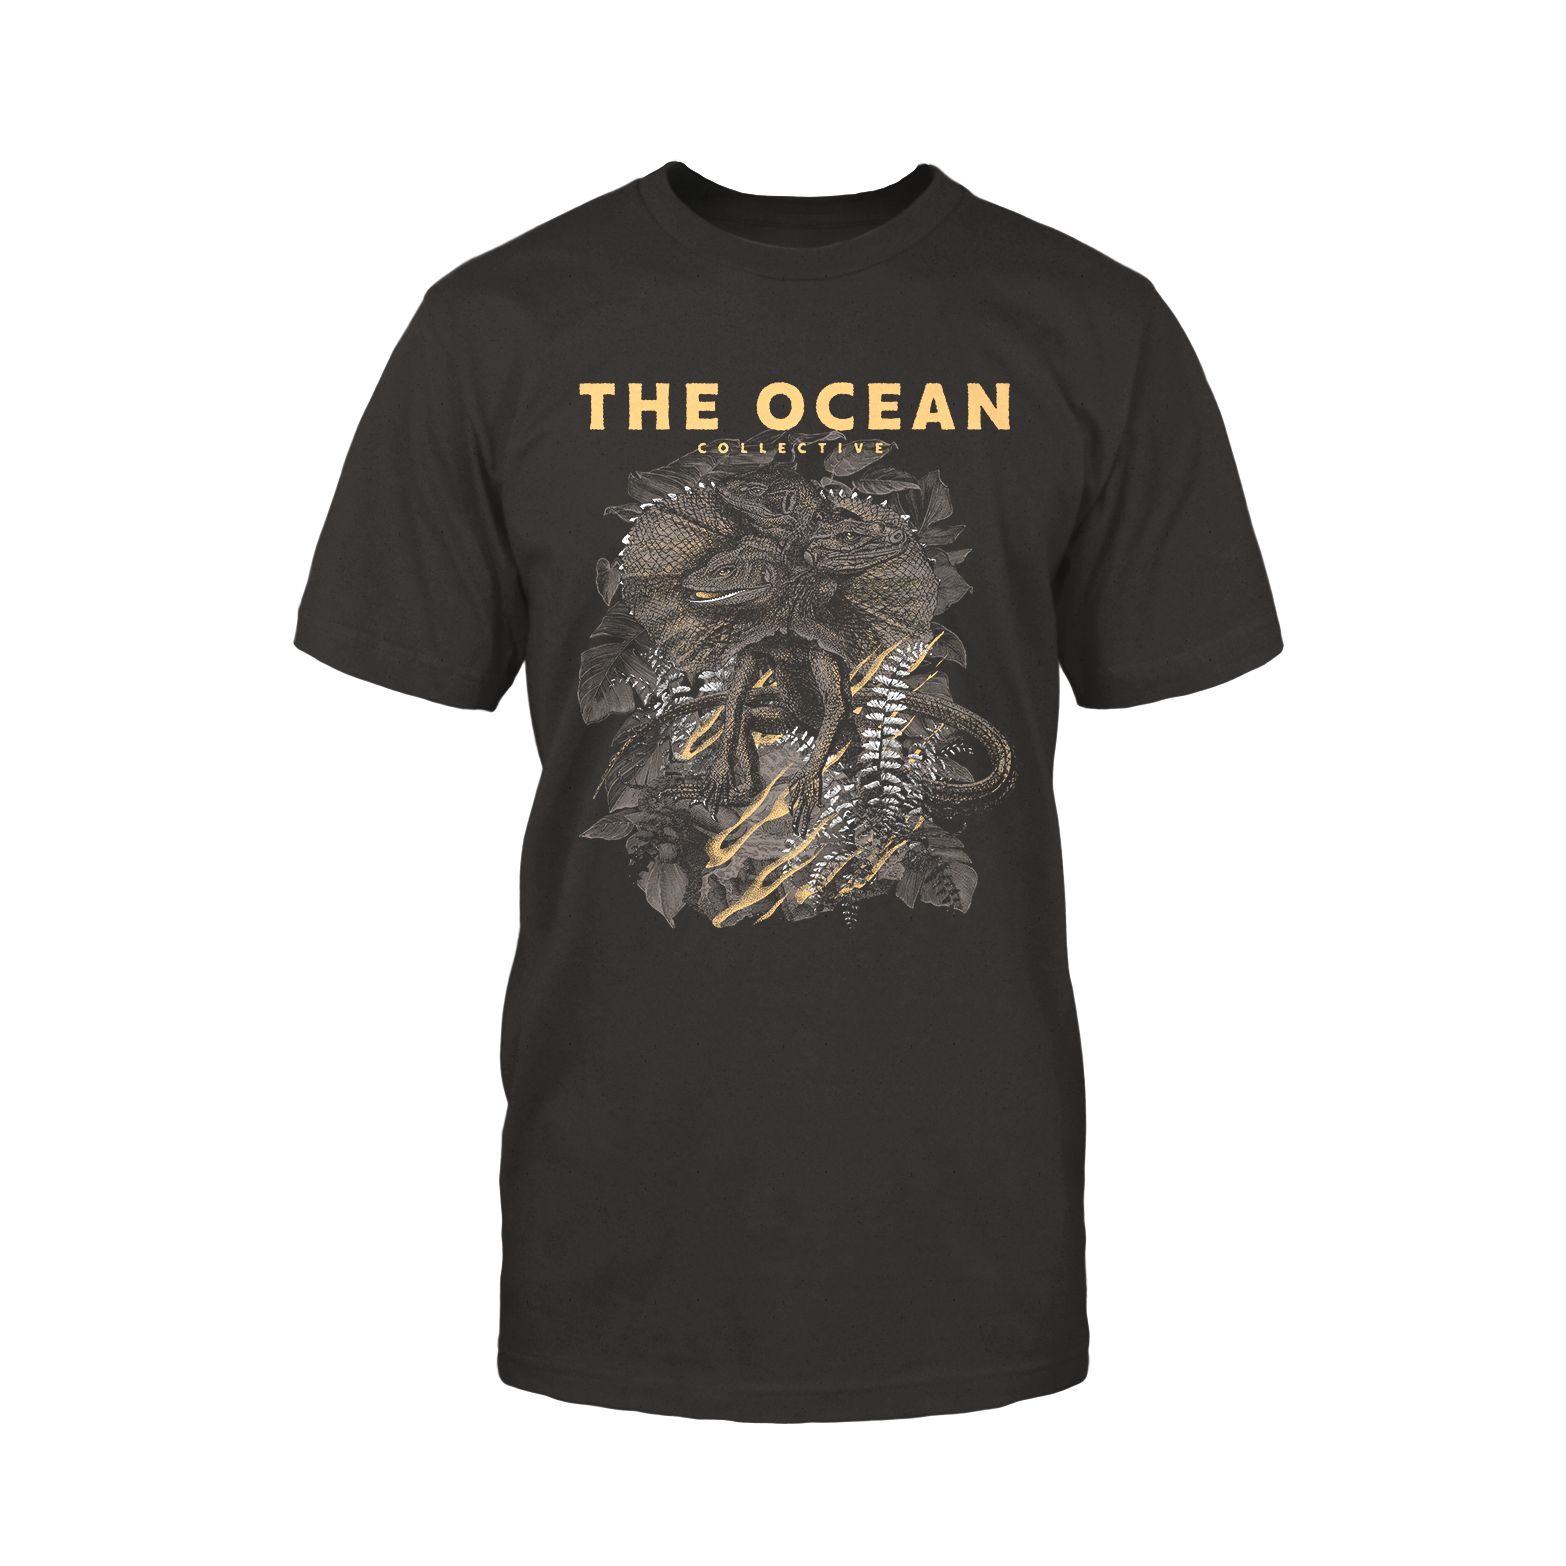 THE OCEAN // PHANEROZOIC II - JURASSIC T-SHIRT - Wild Thing Records